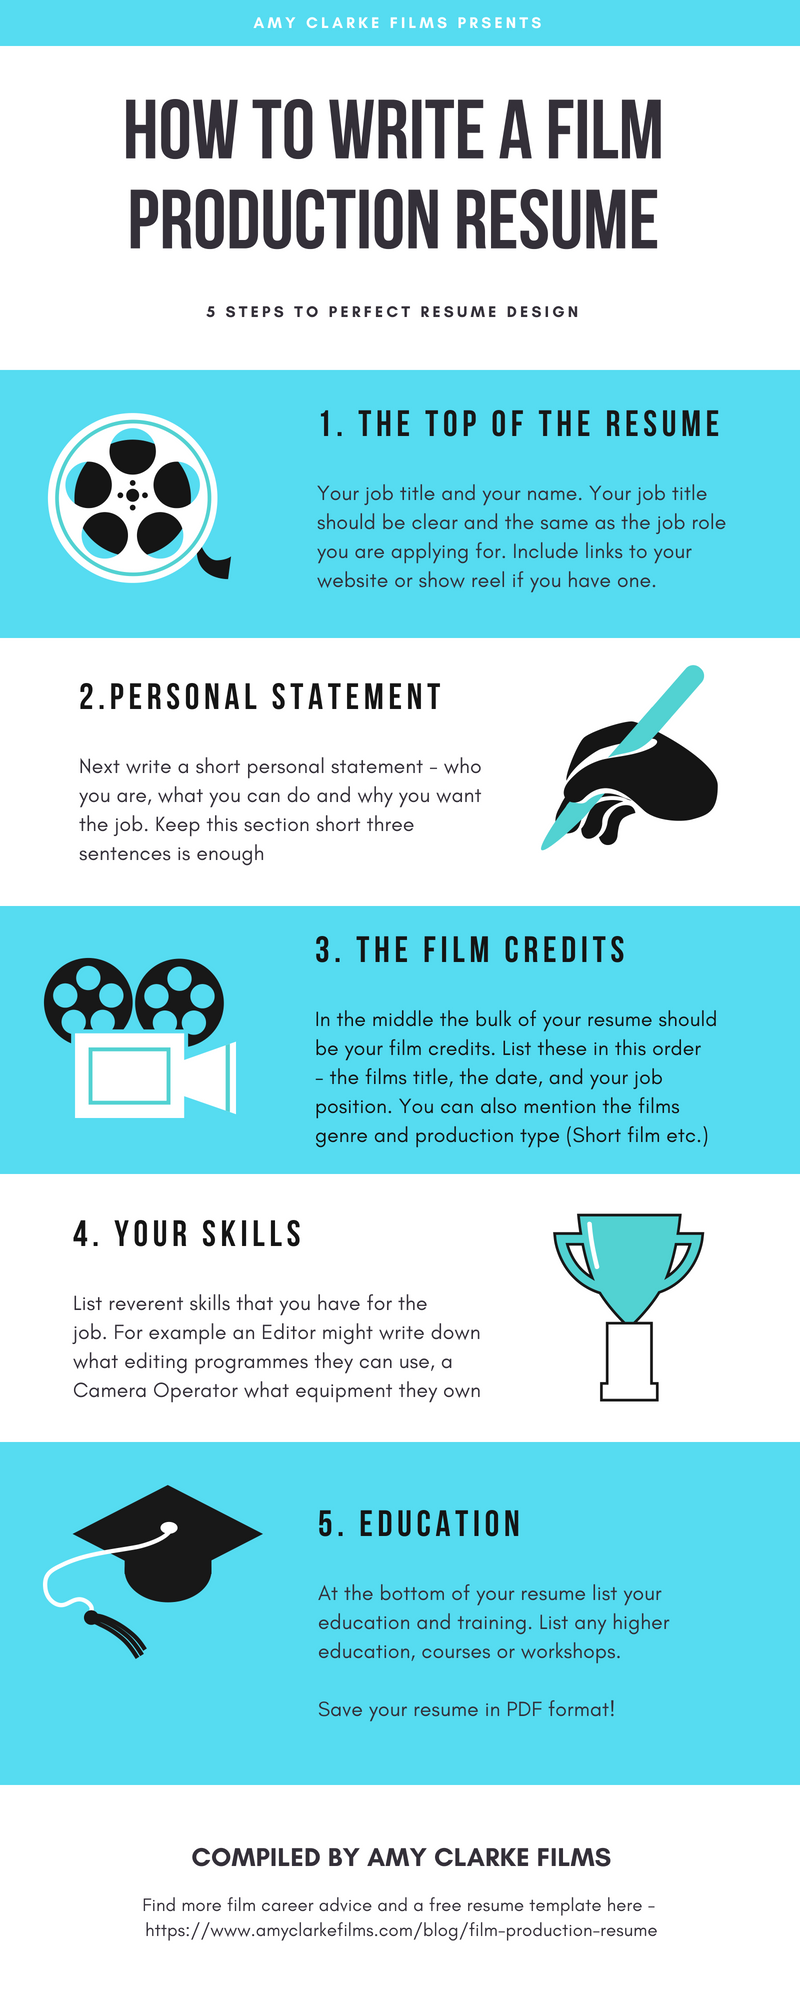 Steps To Writing Your Film Production Resume  Amy Clarke Films